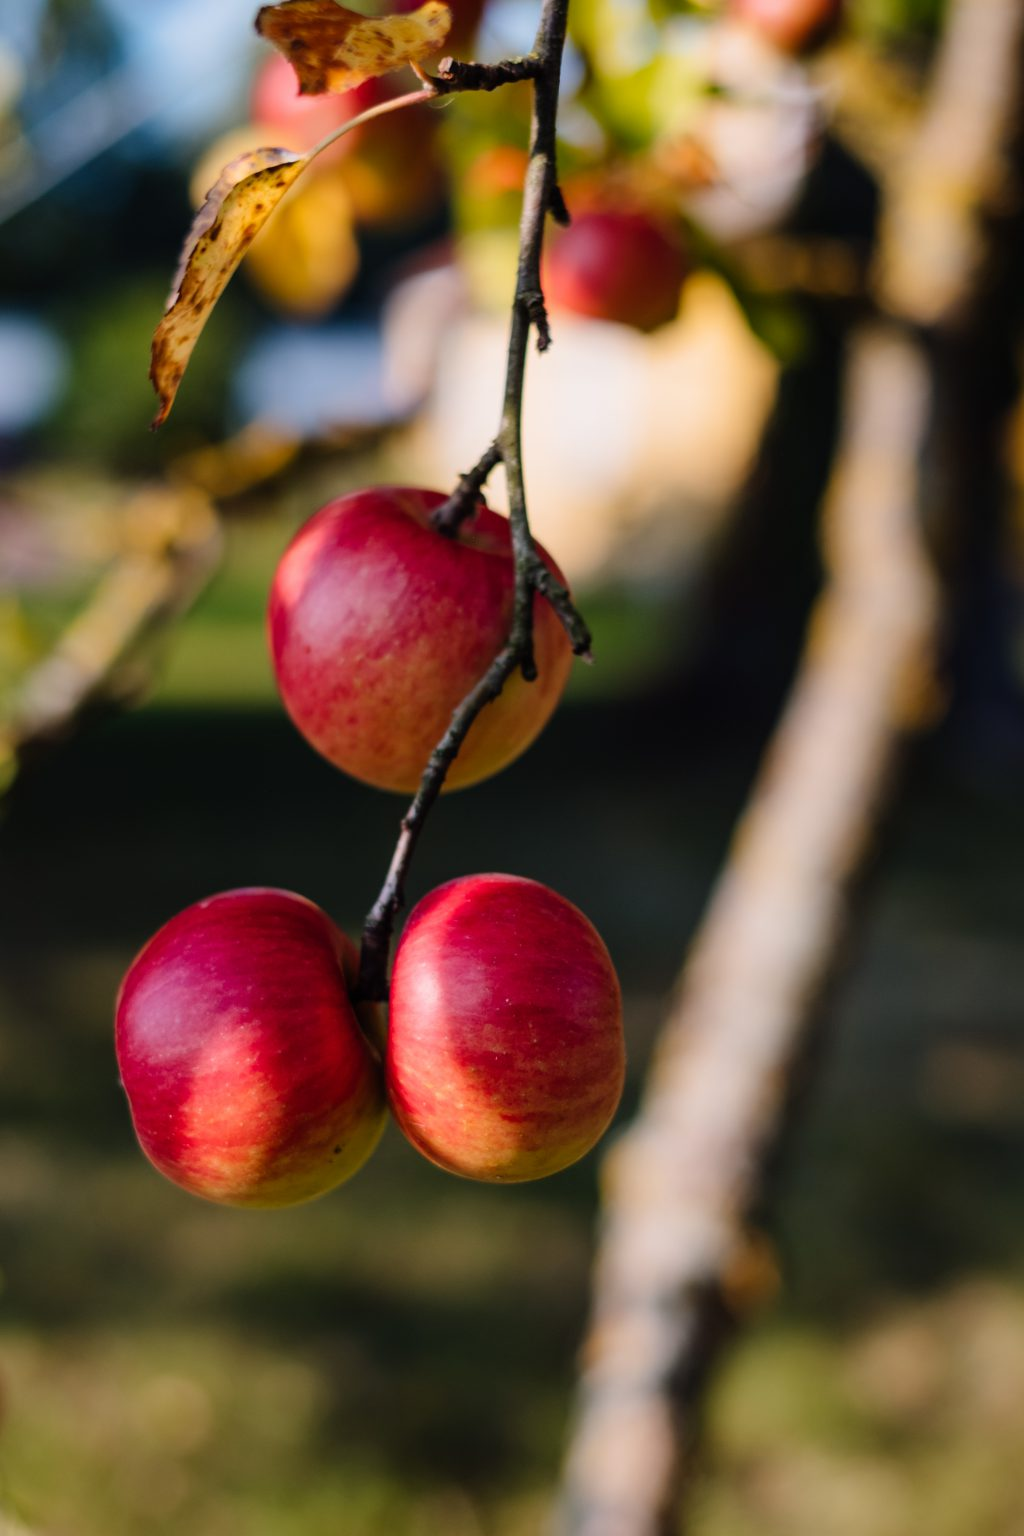 Apples on a tree 4 - free stock photo